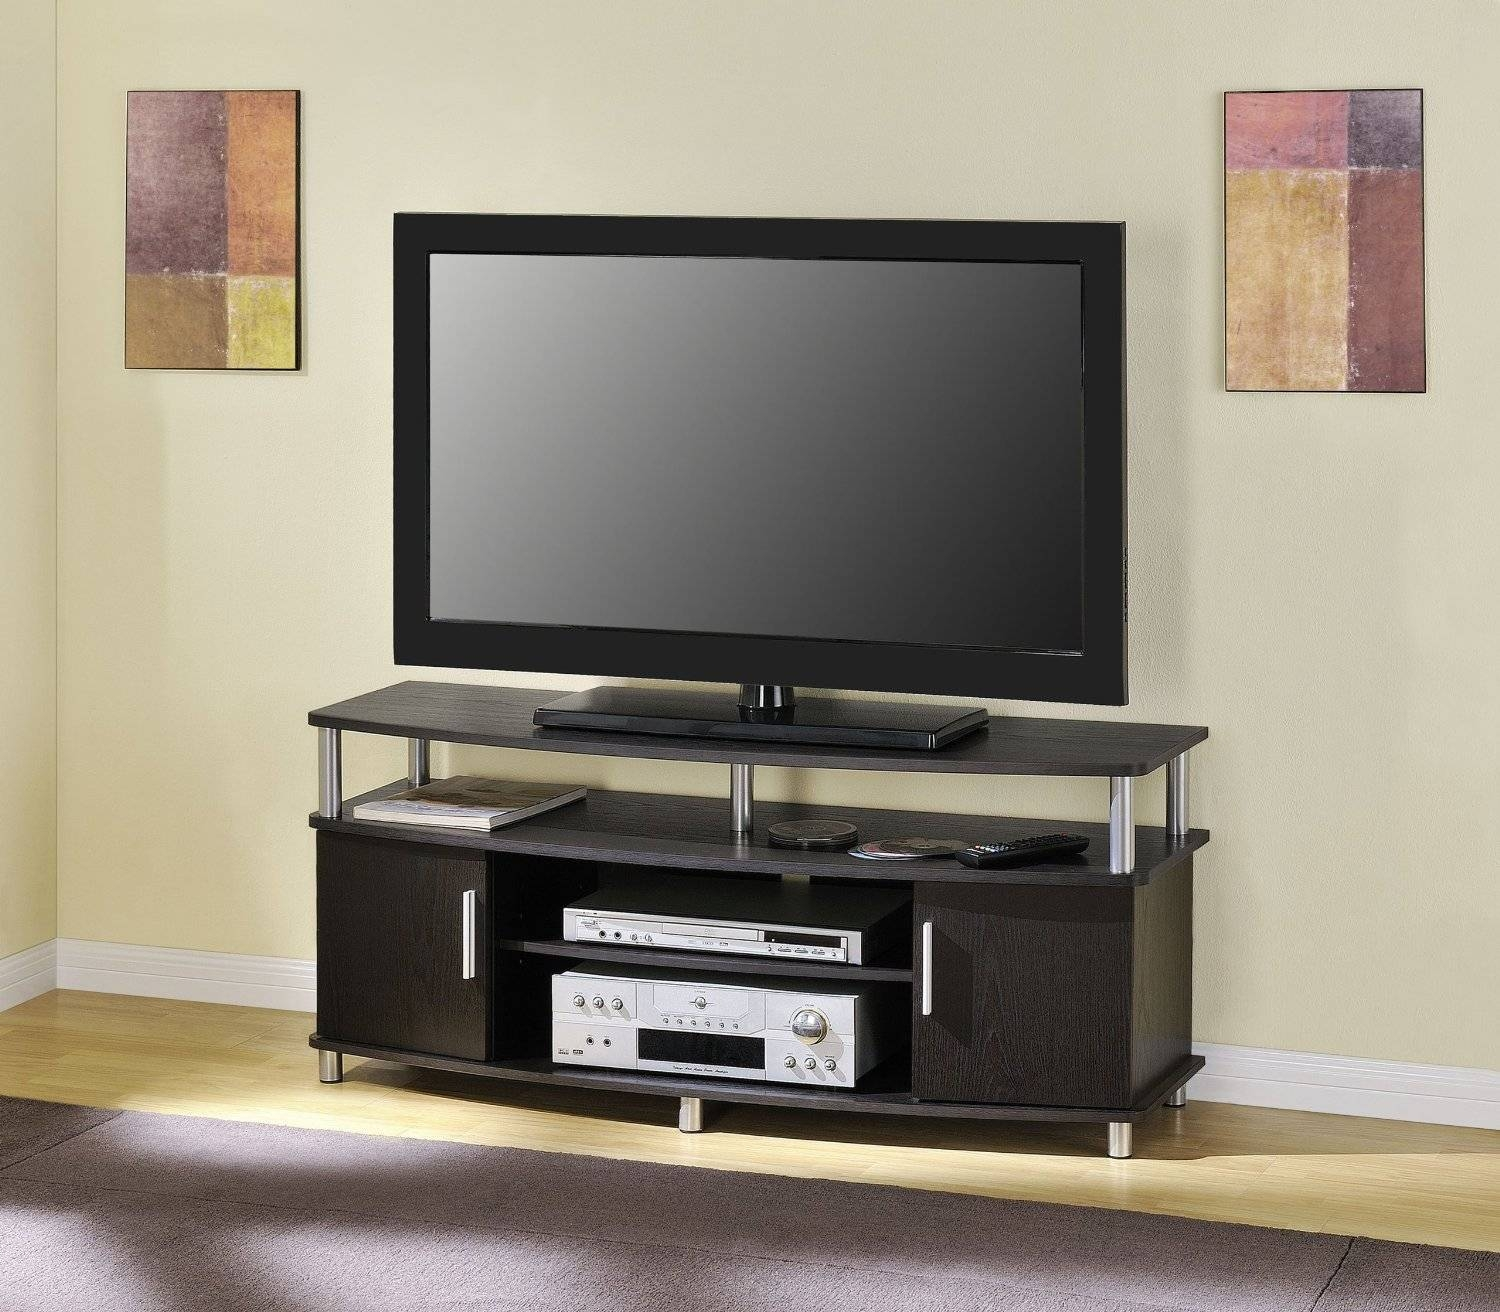 Tv Stands: 7 Best Selling Flat Screen Tv Stands 2017 Intended For Wooden Tv Stands For 55 Inch Flat Screen (View 3 of 15)